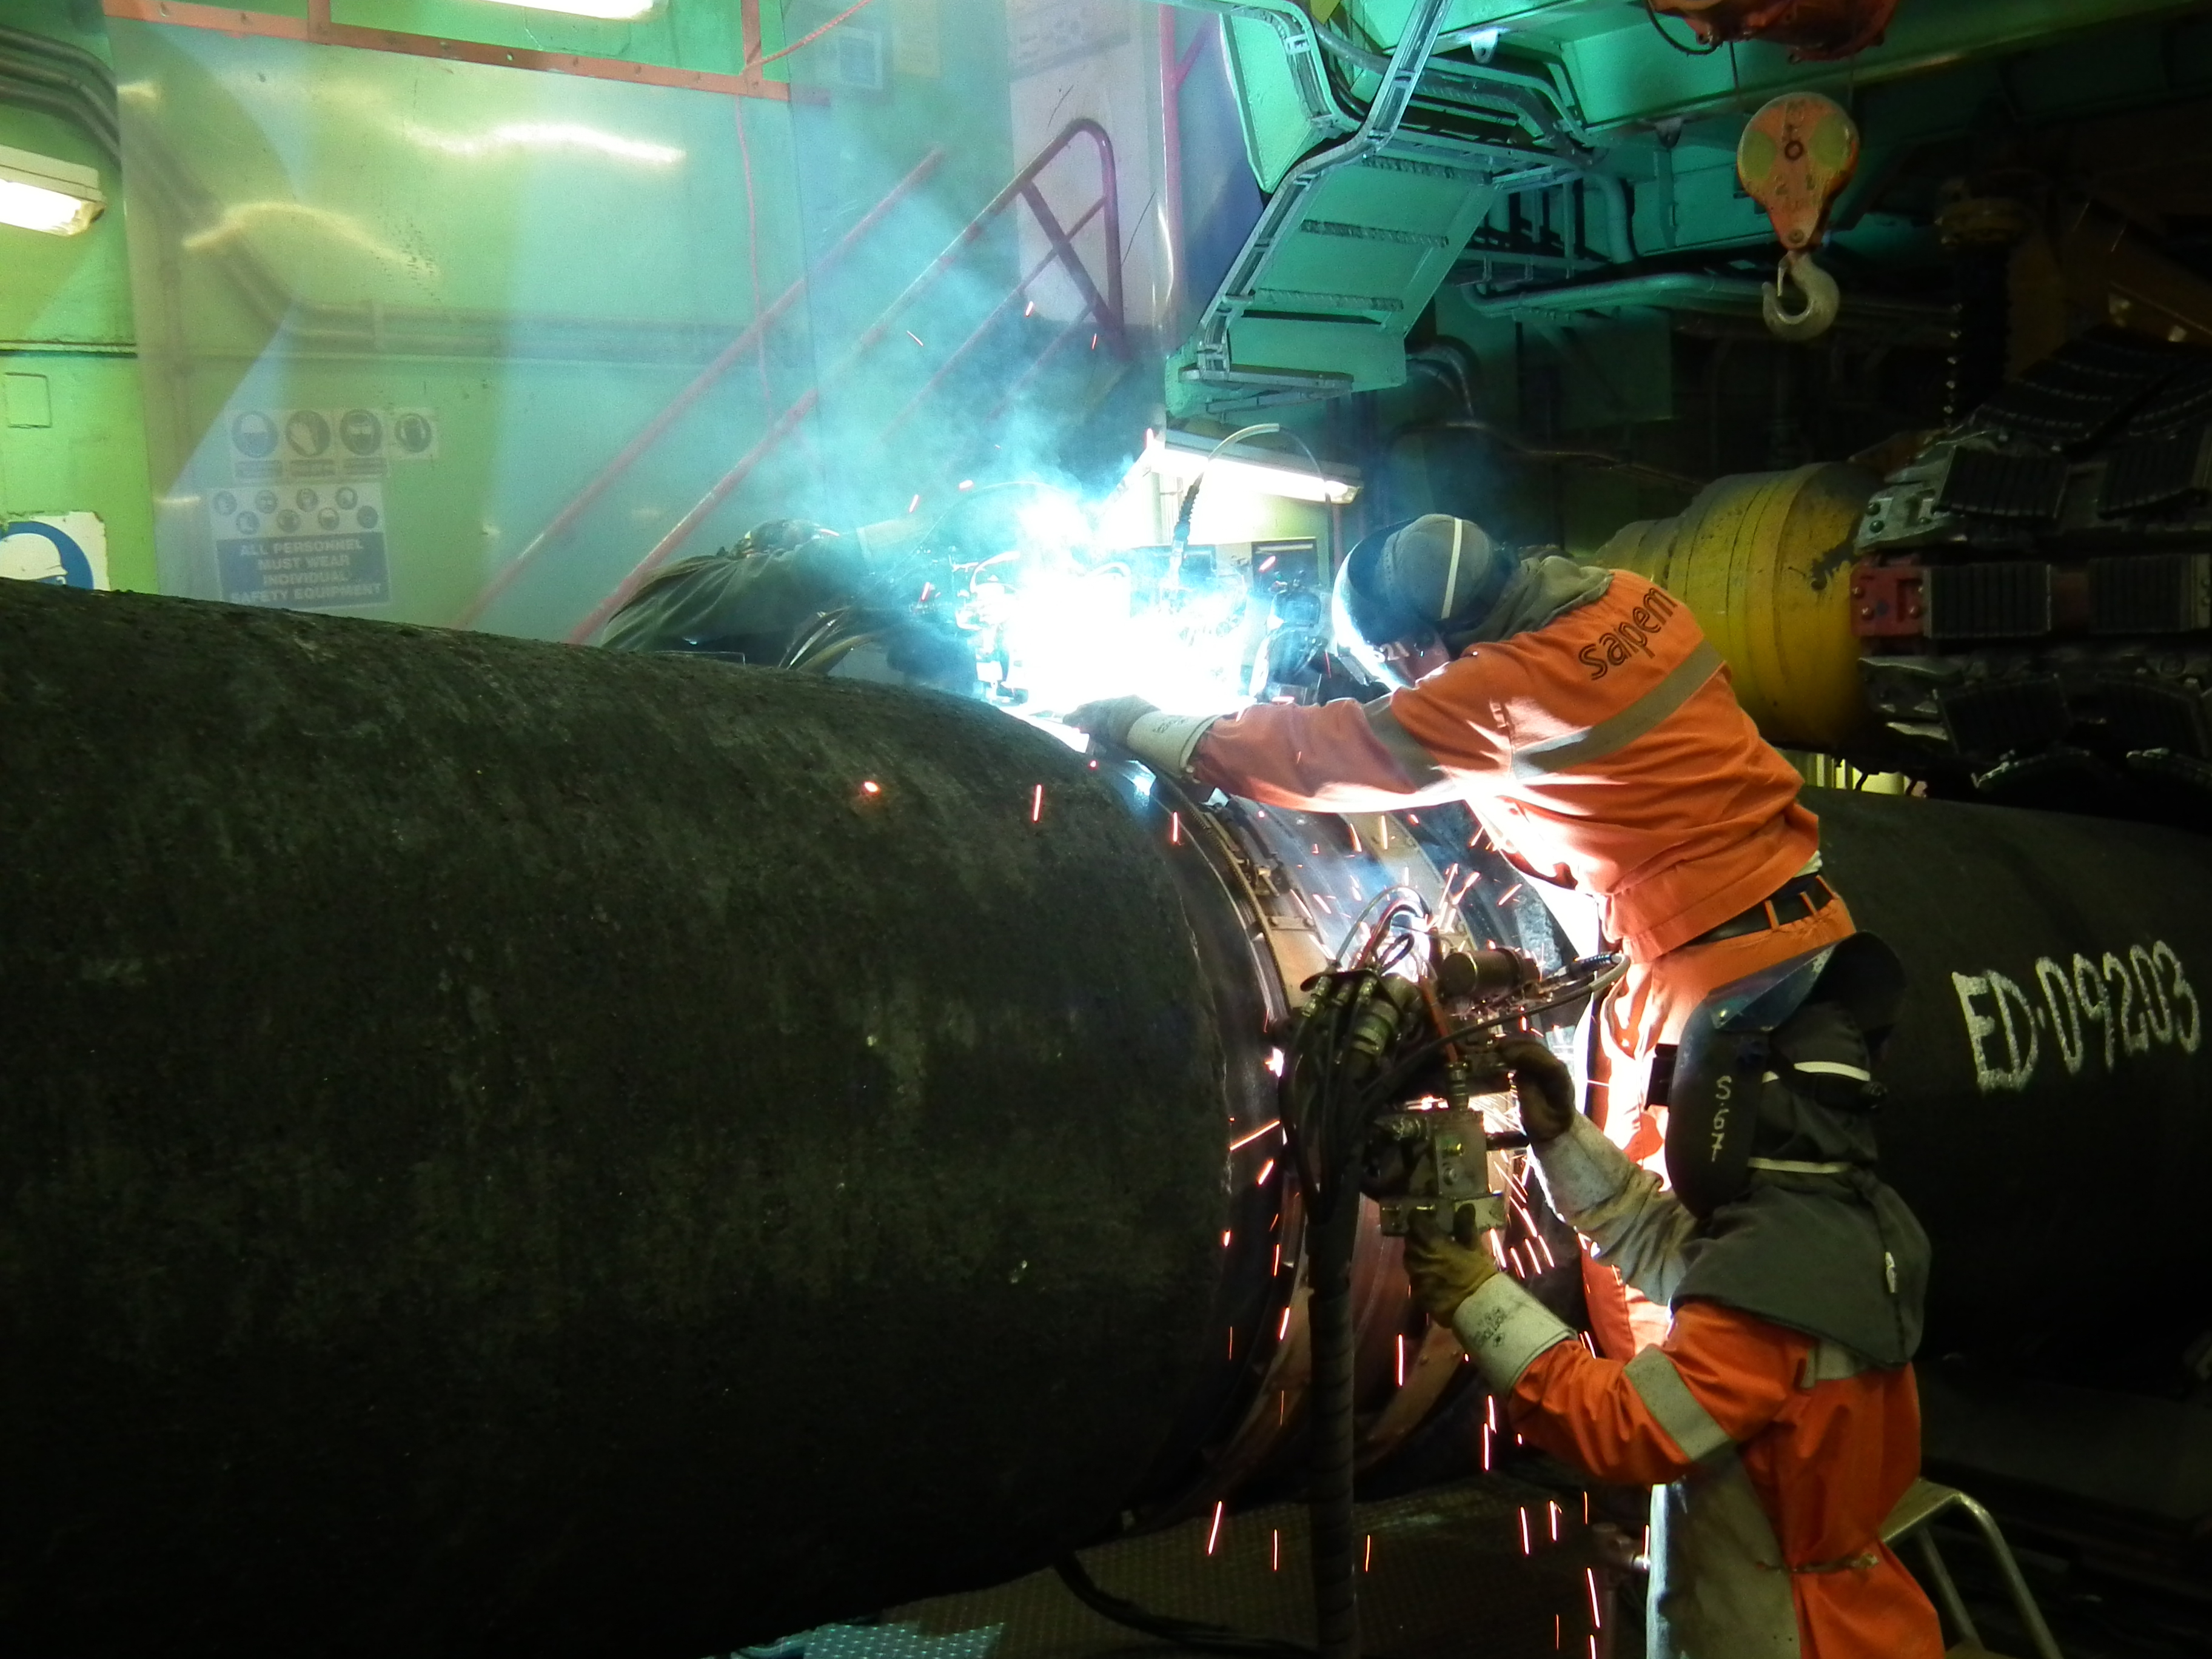 File:Nord Stream - two pipes are welded together on the ...